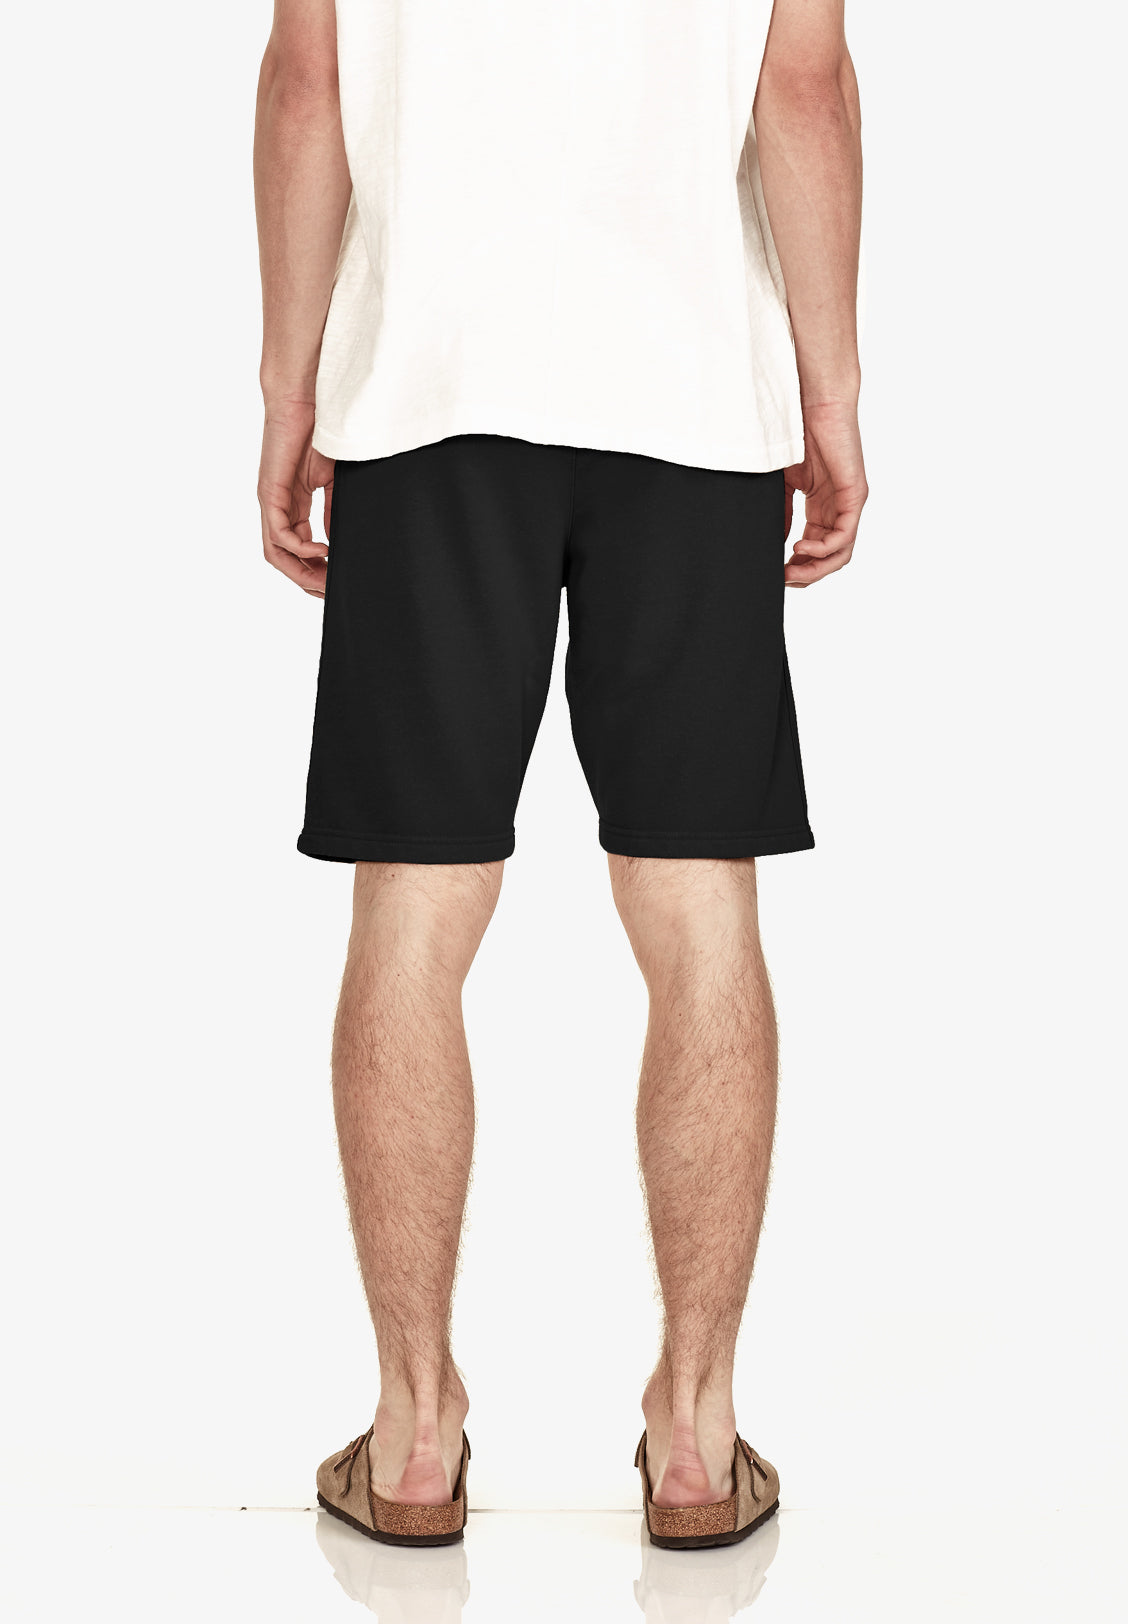 MEN'S LEISURE SHORT, VINTAGE BLACK